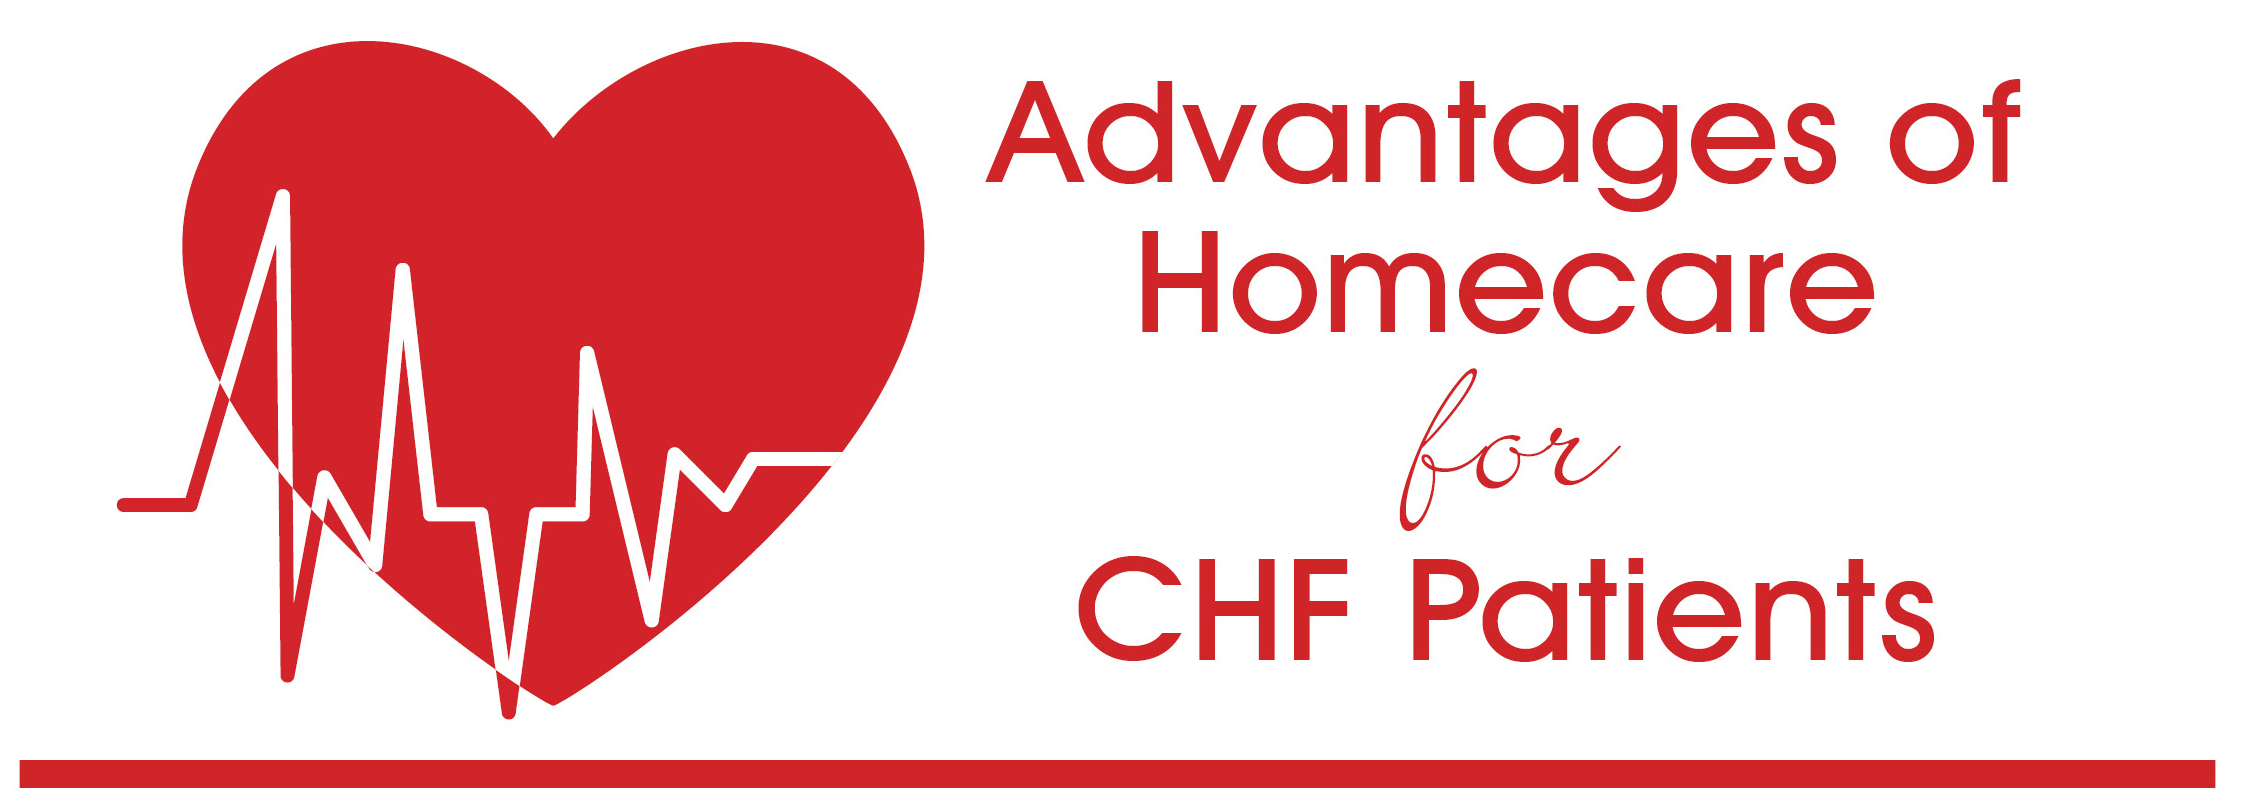 5 Advantages of Home Heath for CHF Patients